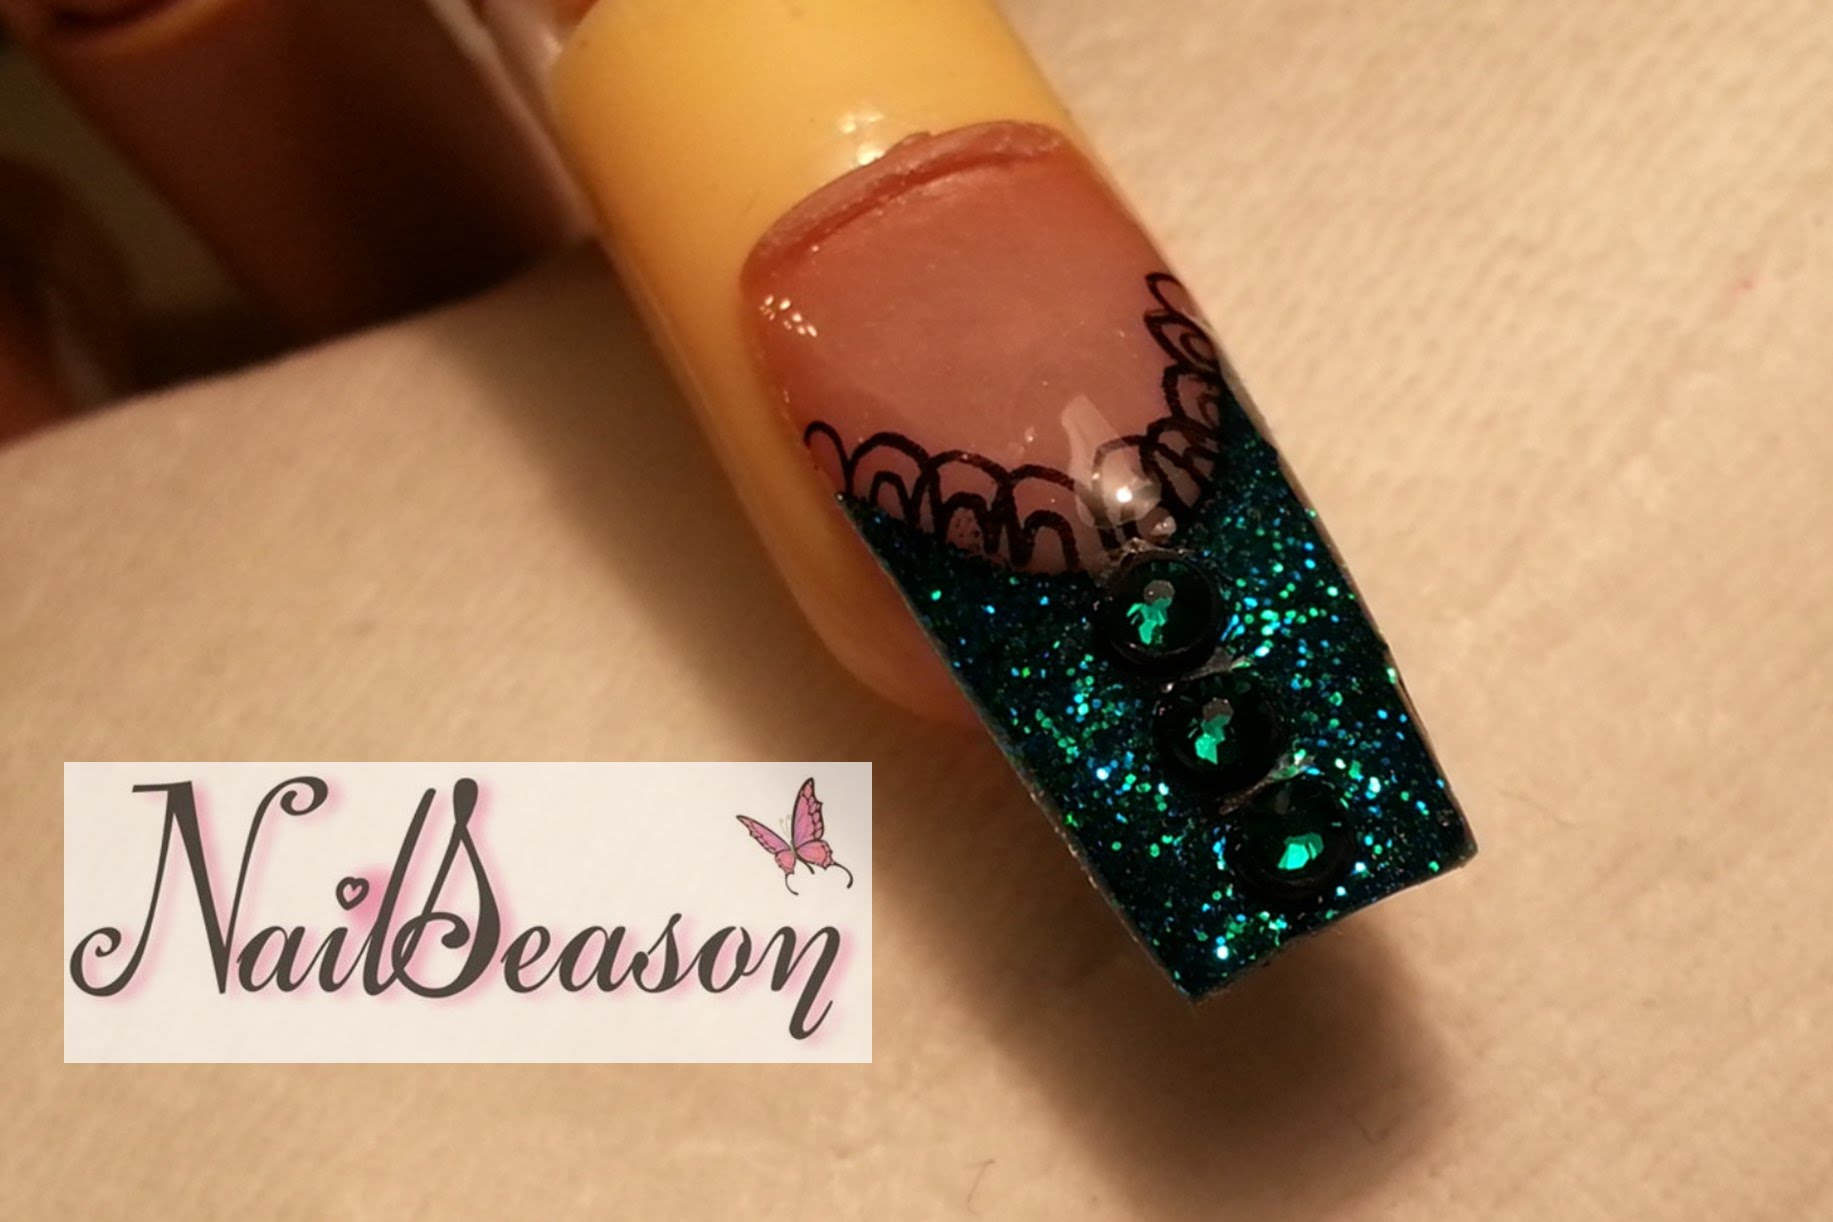 Diy acrylic nail designs sparkles lace and rhinestones solutioingenieria Choice Image